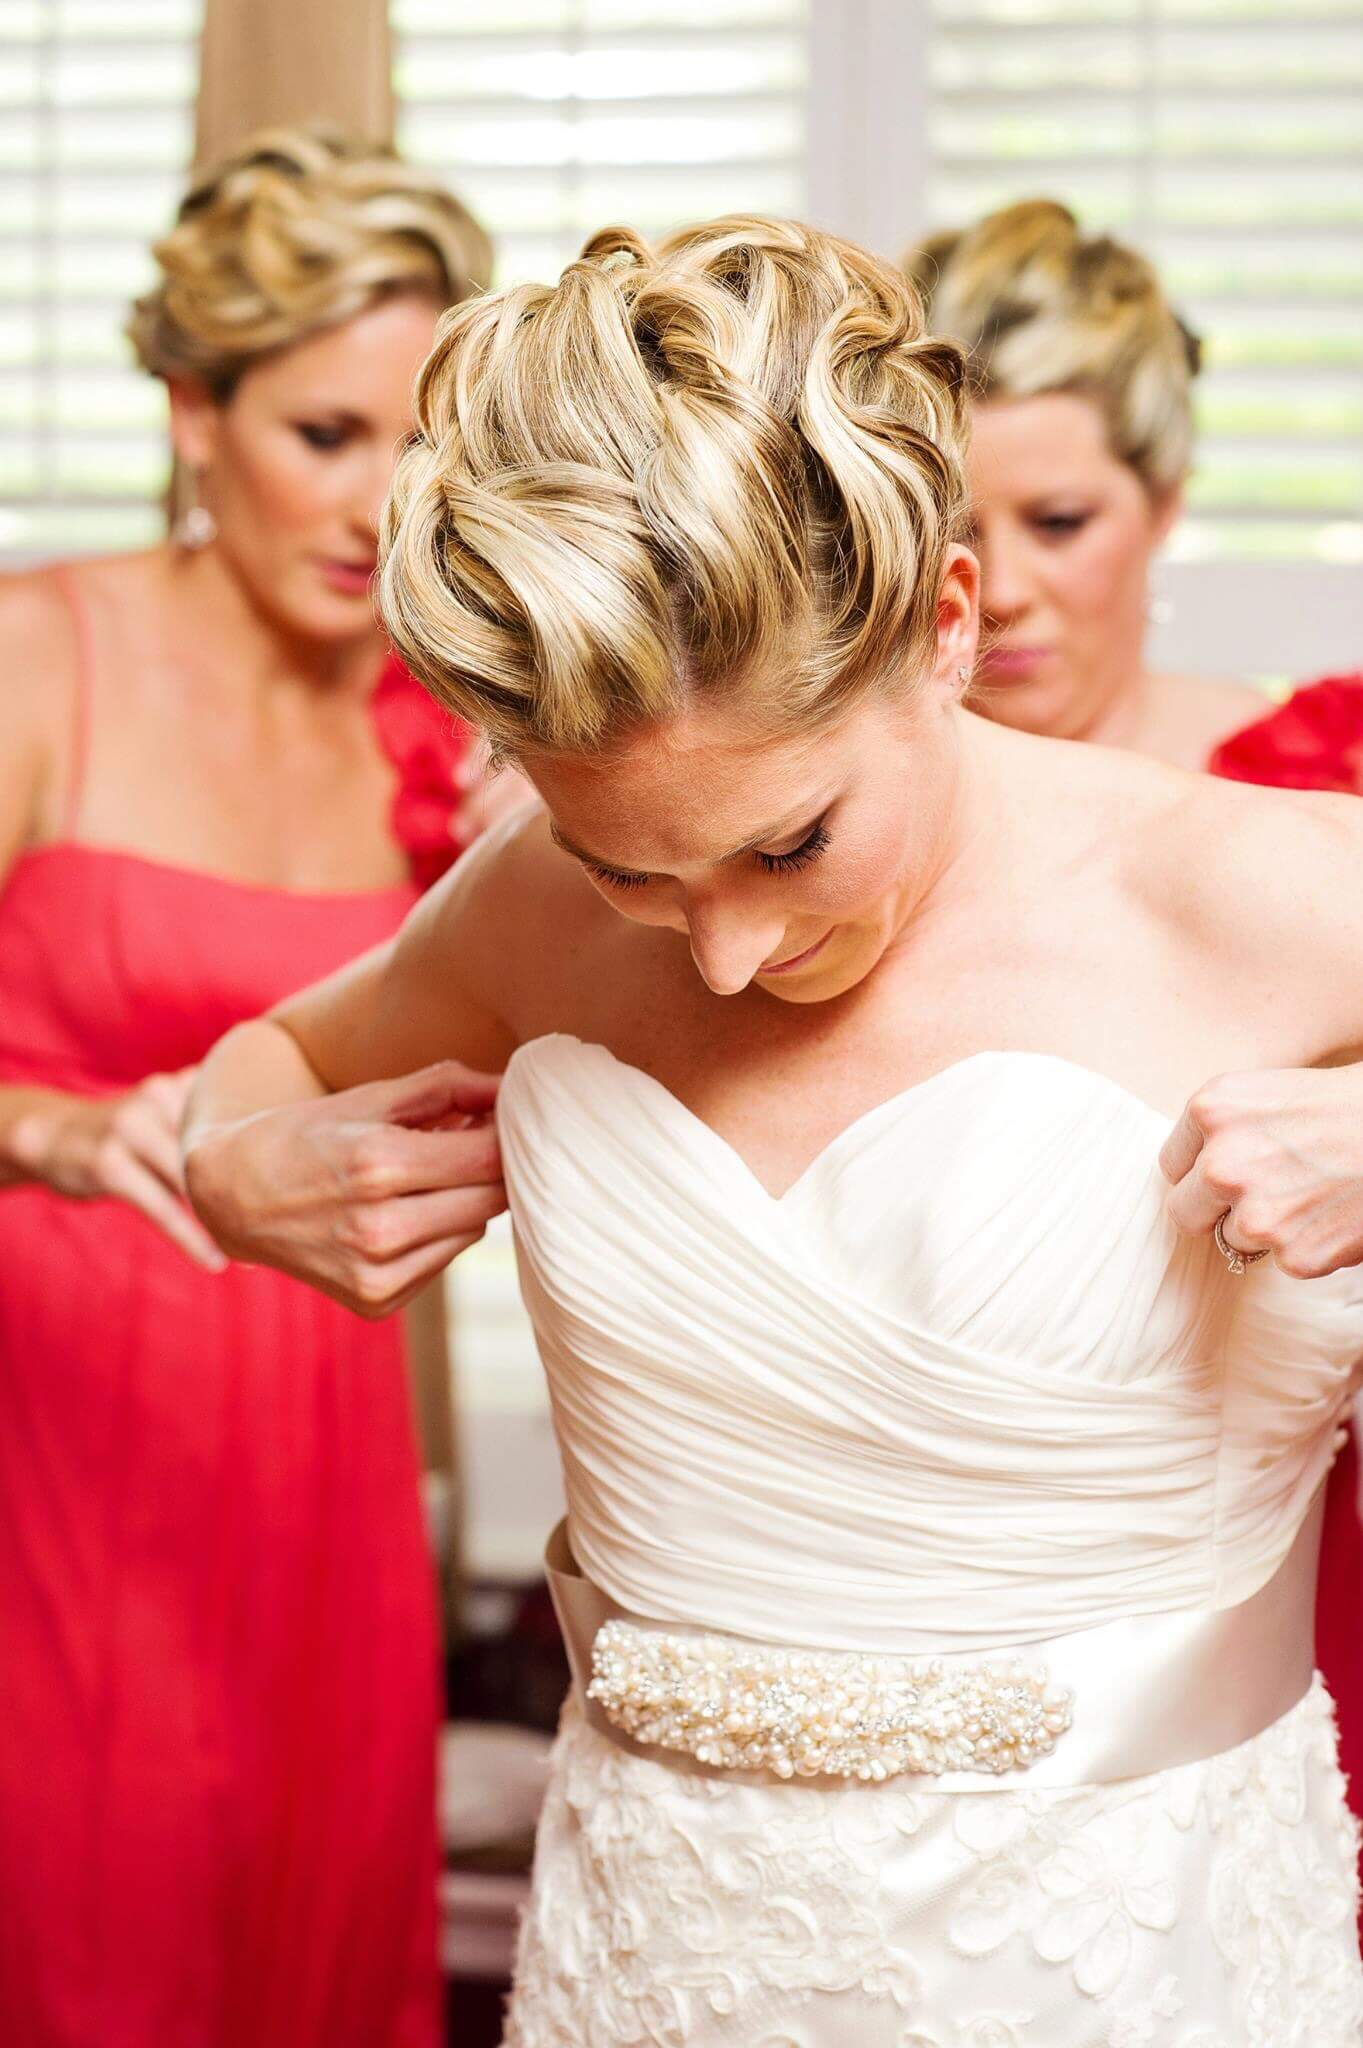 hair-salon-jacksonville-wedding-hairstyles-99-13